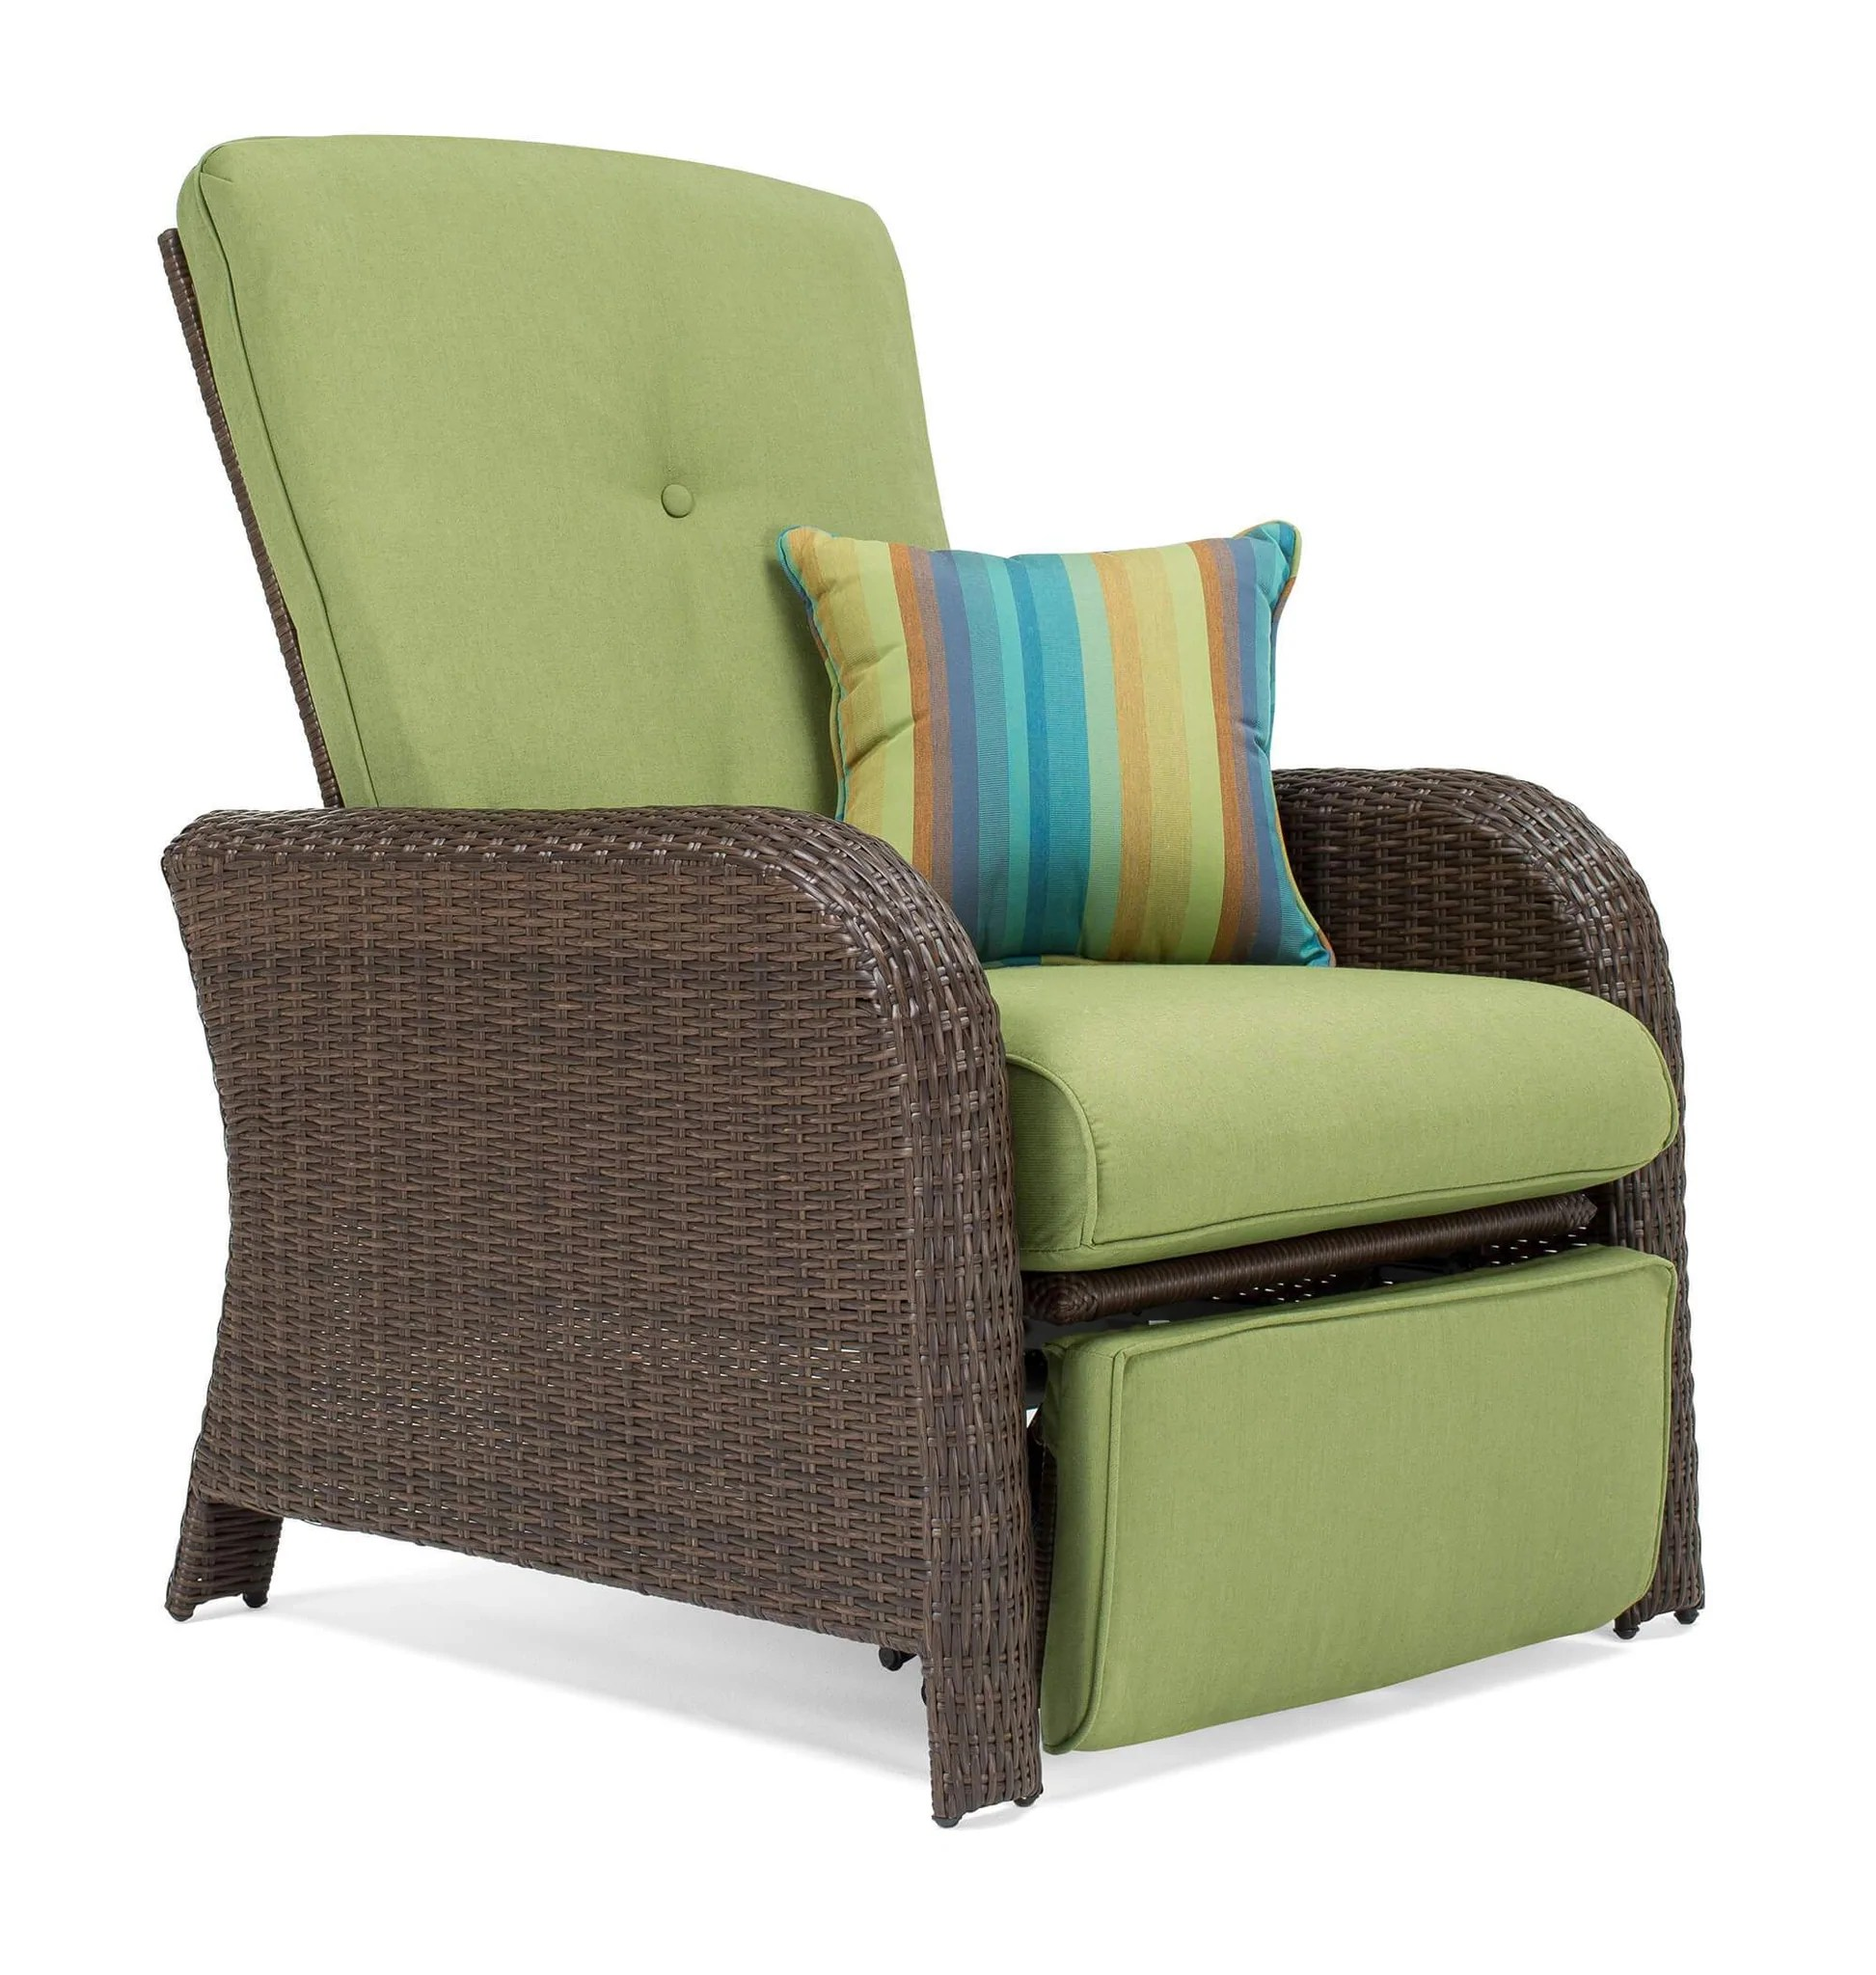 reclining patio chairs and table bedroom reading chair grey sawyer recliner set includes 2 recliners side